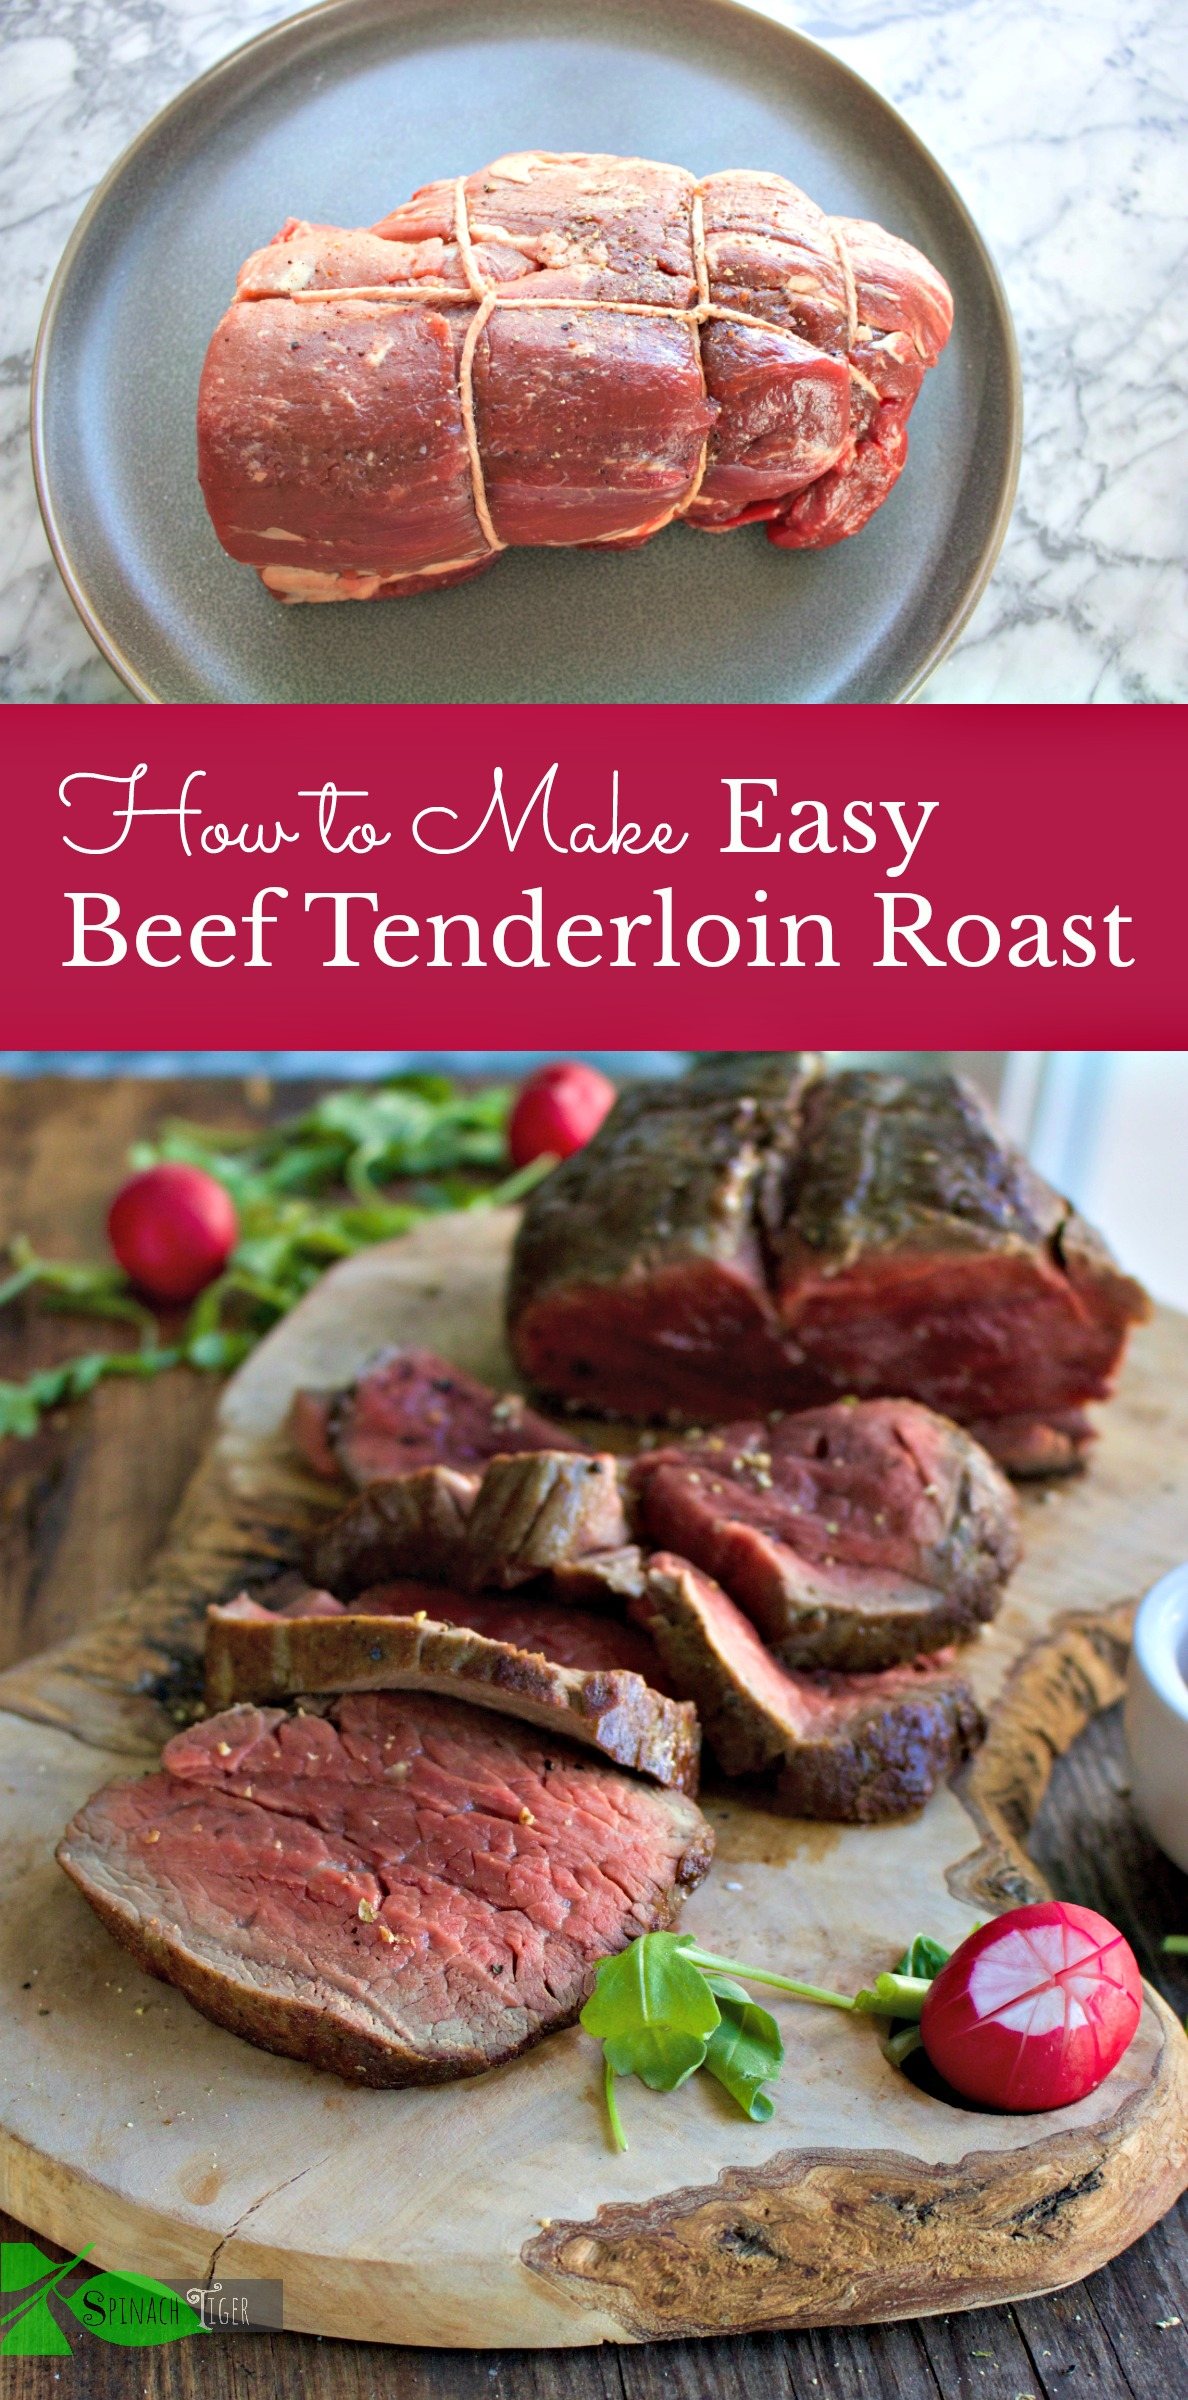 Preparing beef tenderloin couldn't be easier. How to sear, and roast beef tenderloin with sides to go with this perfect dinner. #beeftenderloin #spinachtiger via @angelaroberts